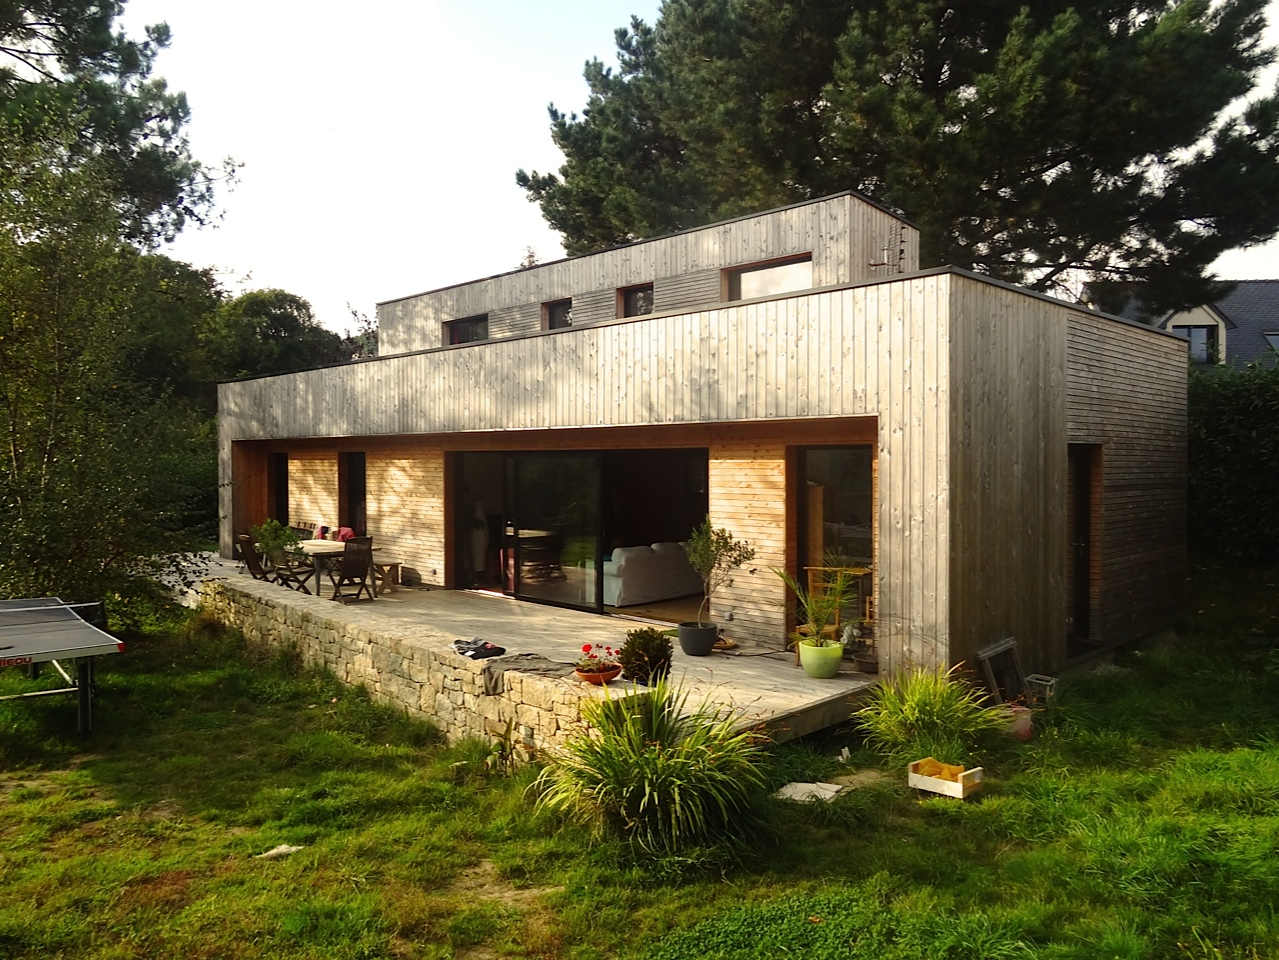 Tyerra architectes architecture habitat sain finist re for Petite maison bois contemporaine